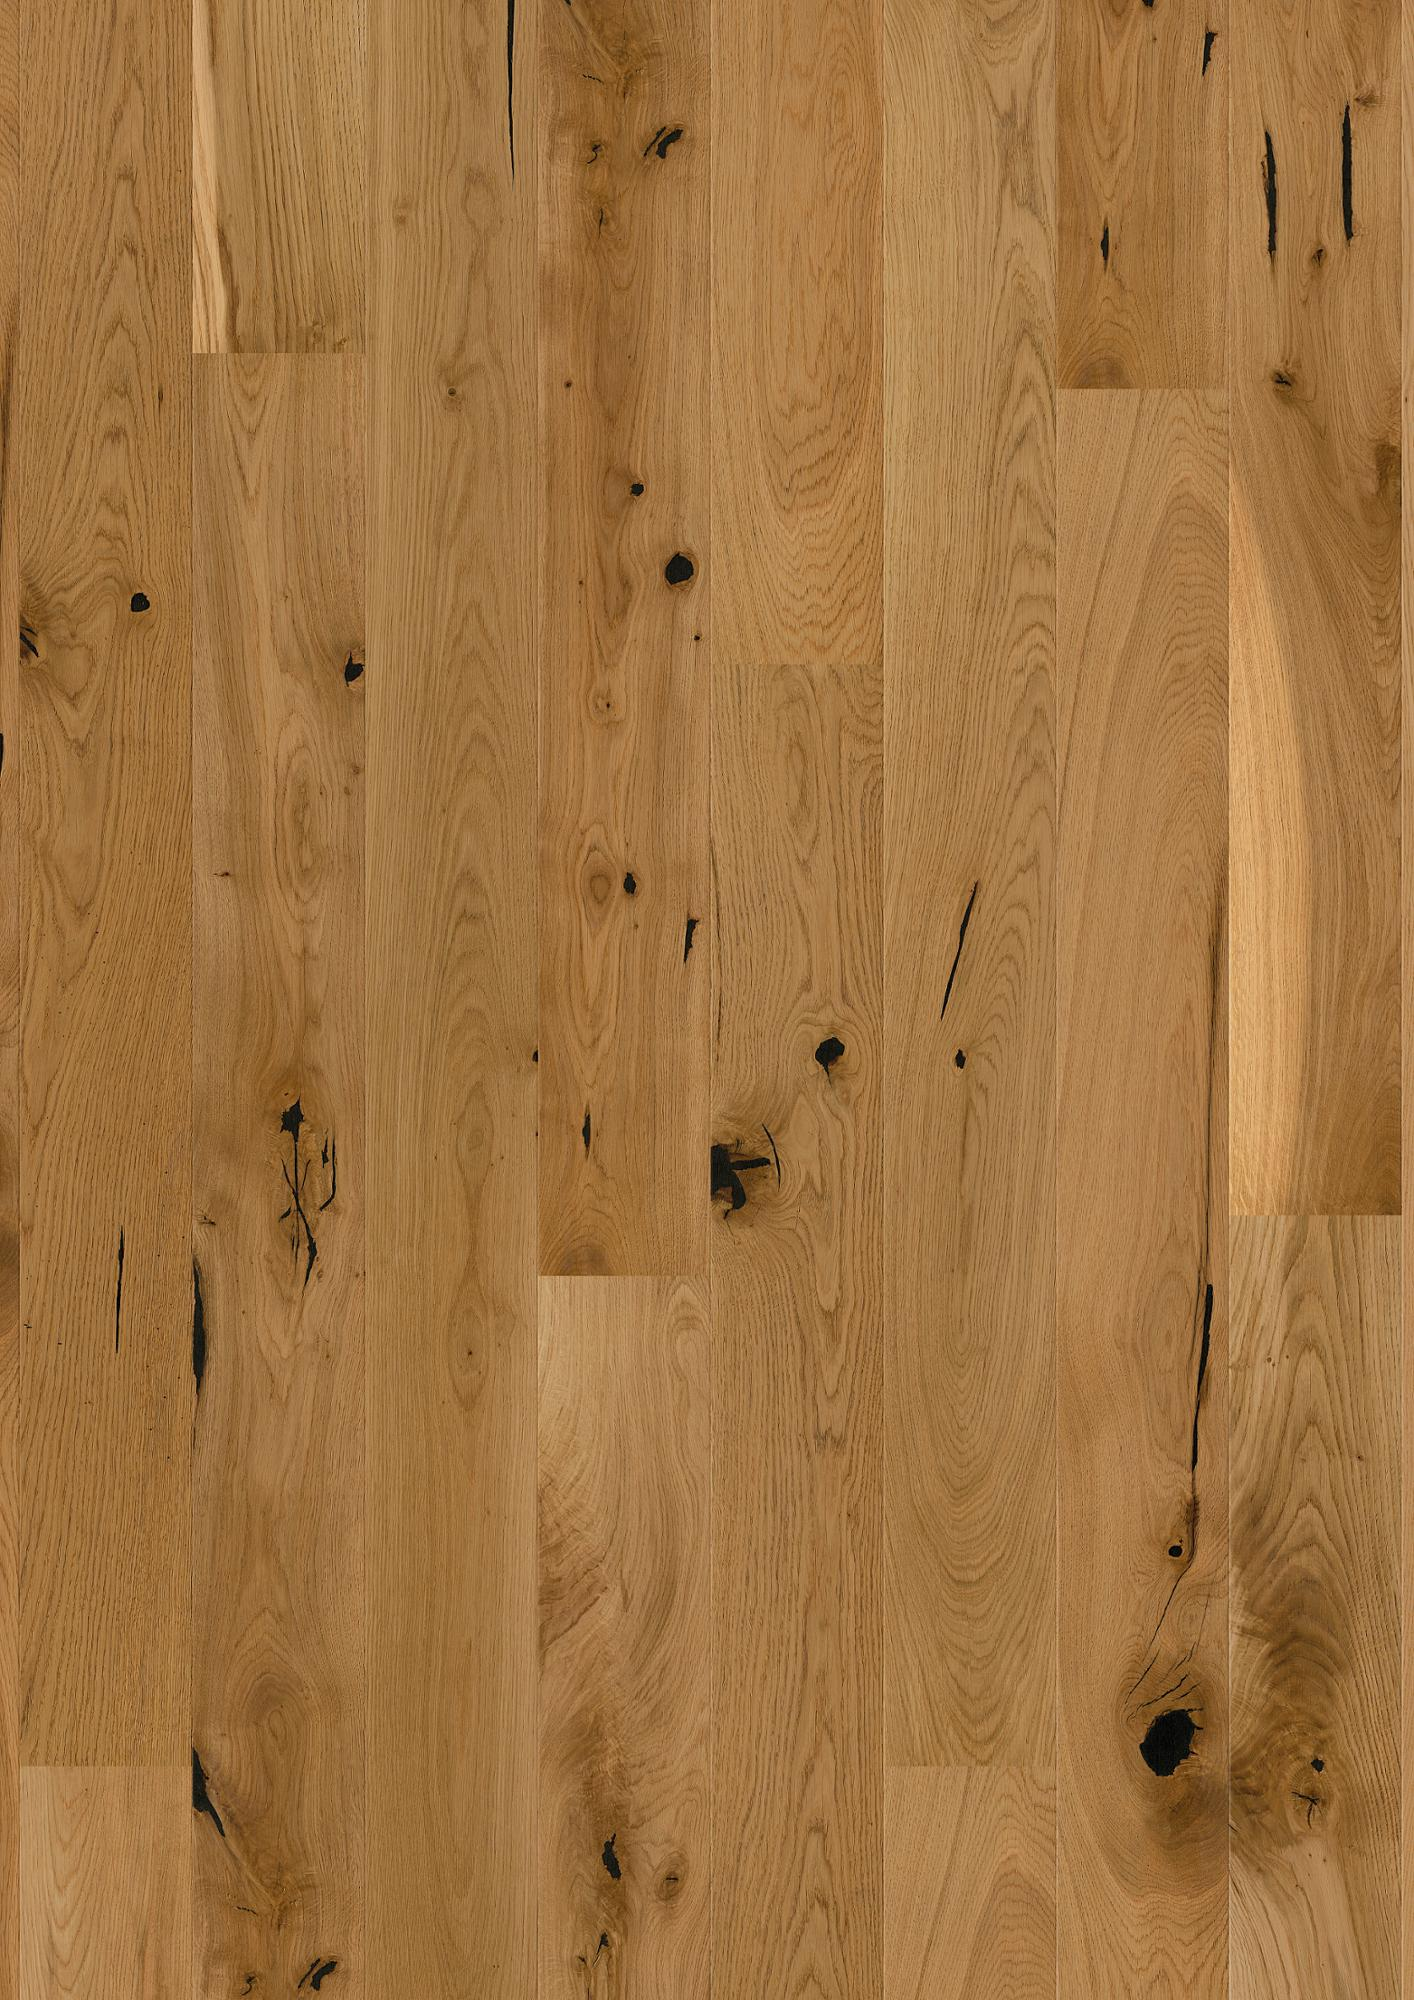 Oak Espressivo, Live Natural oil, Brushed, Beveled 2V, Plank 138, 14x138x2200mm